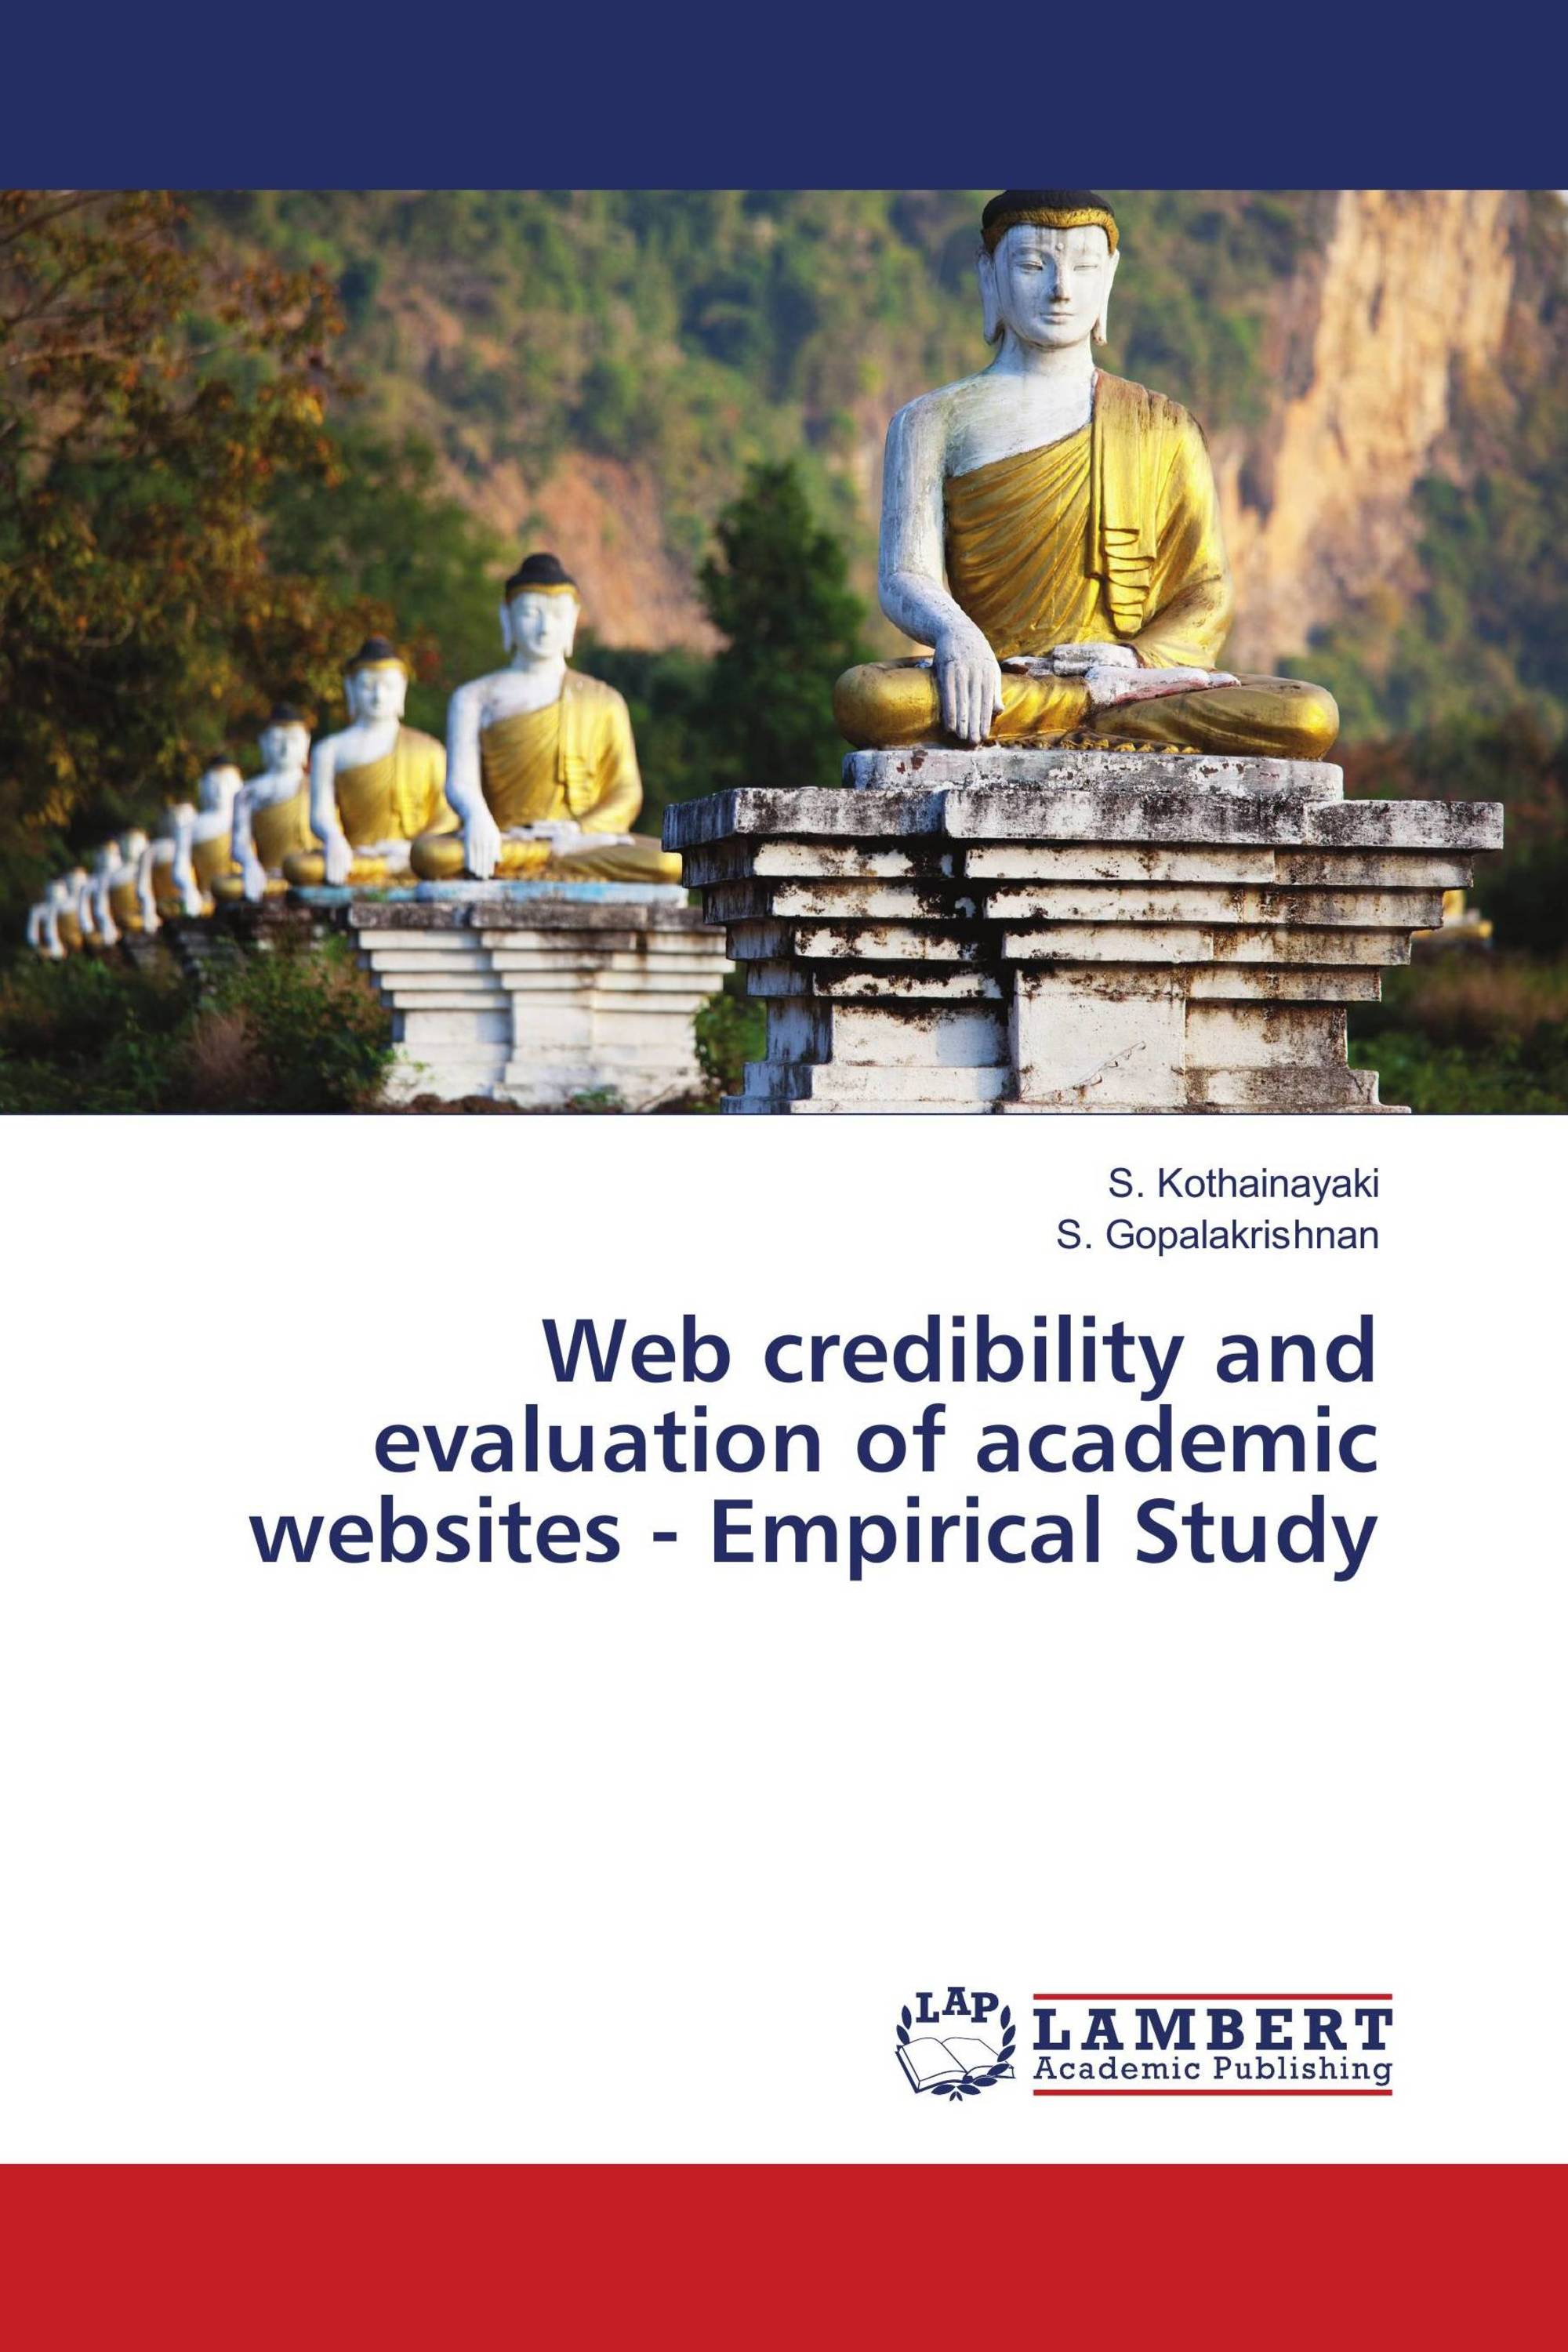 Web credibility and evaluation of academic websites